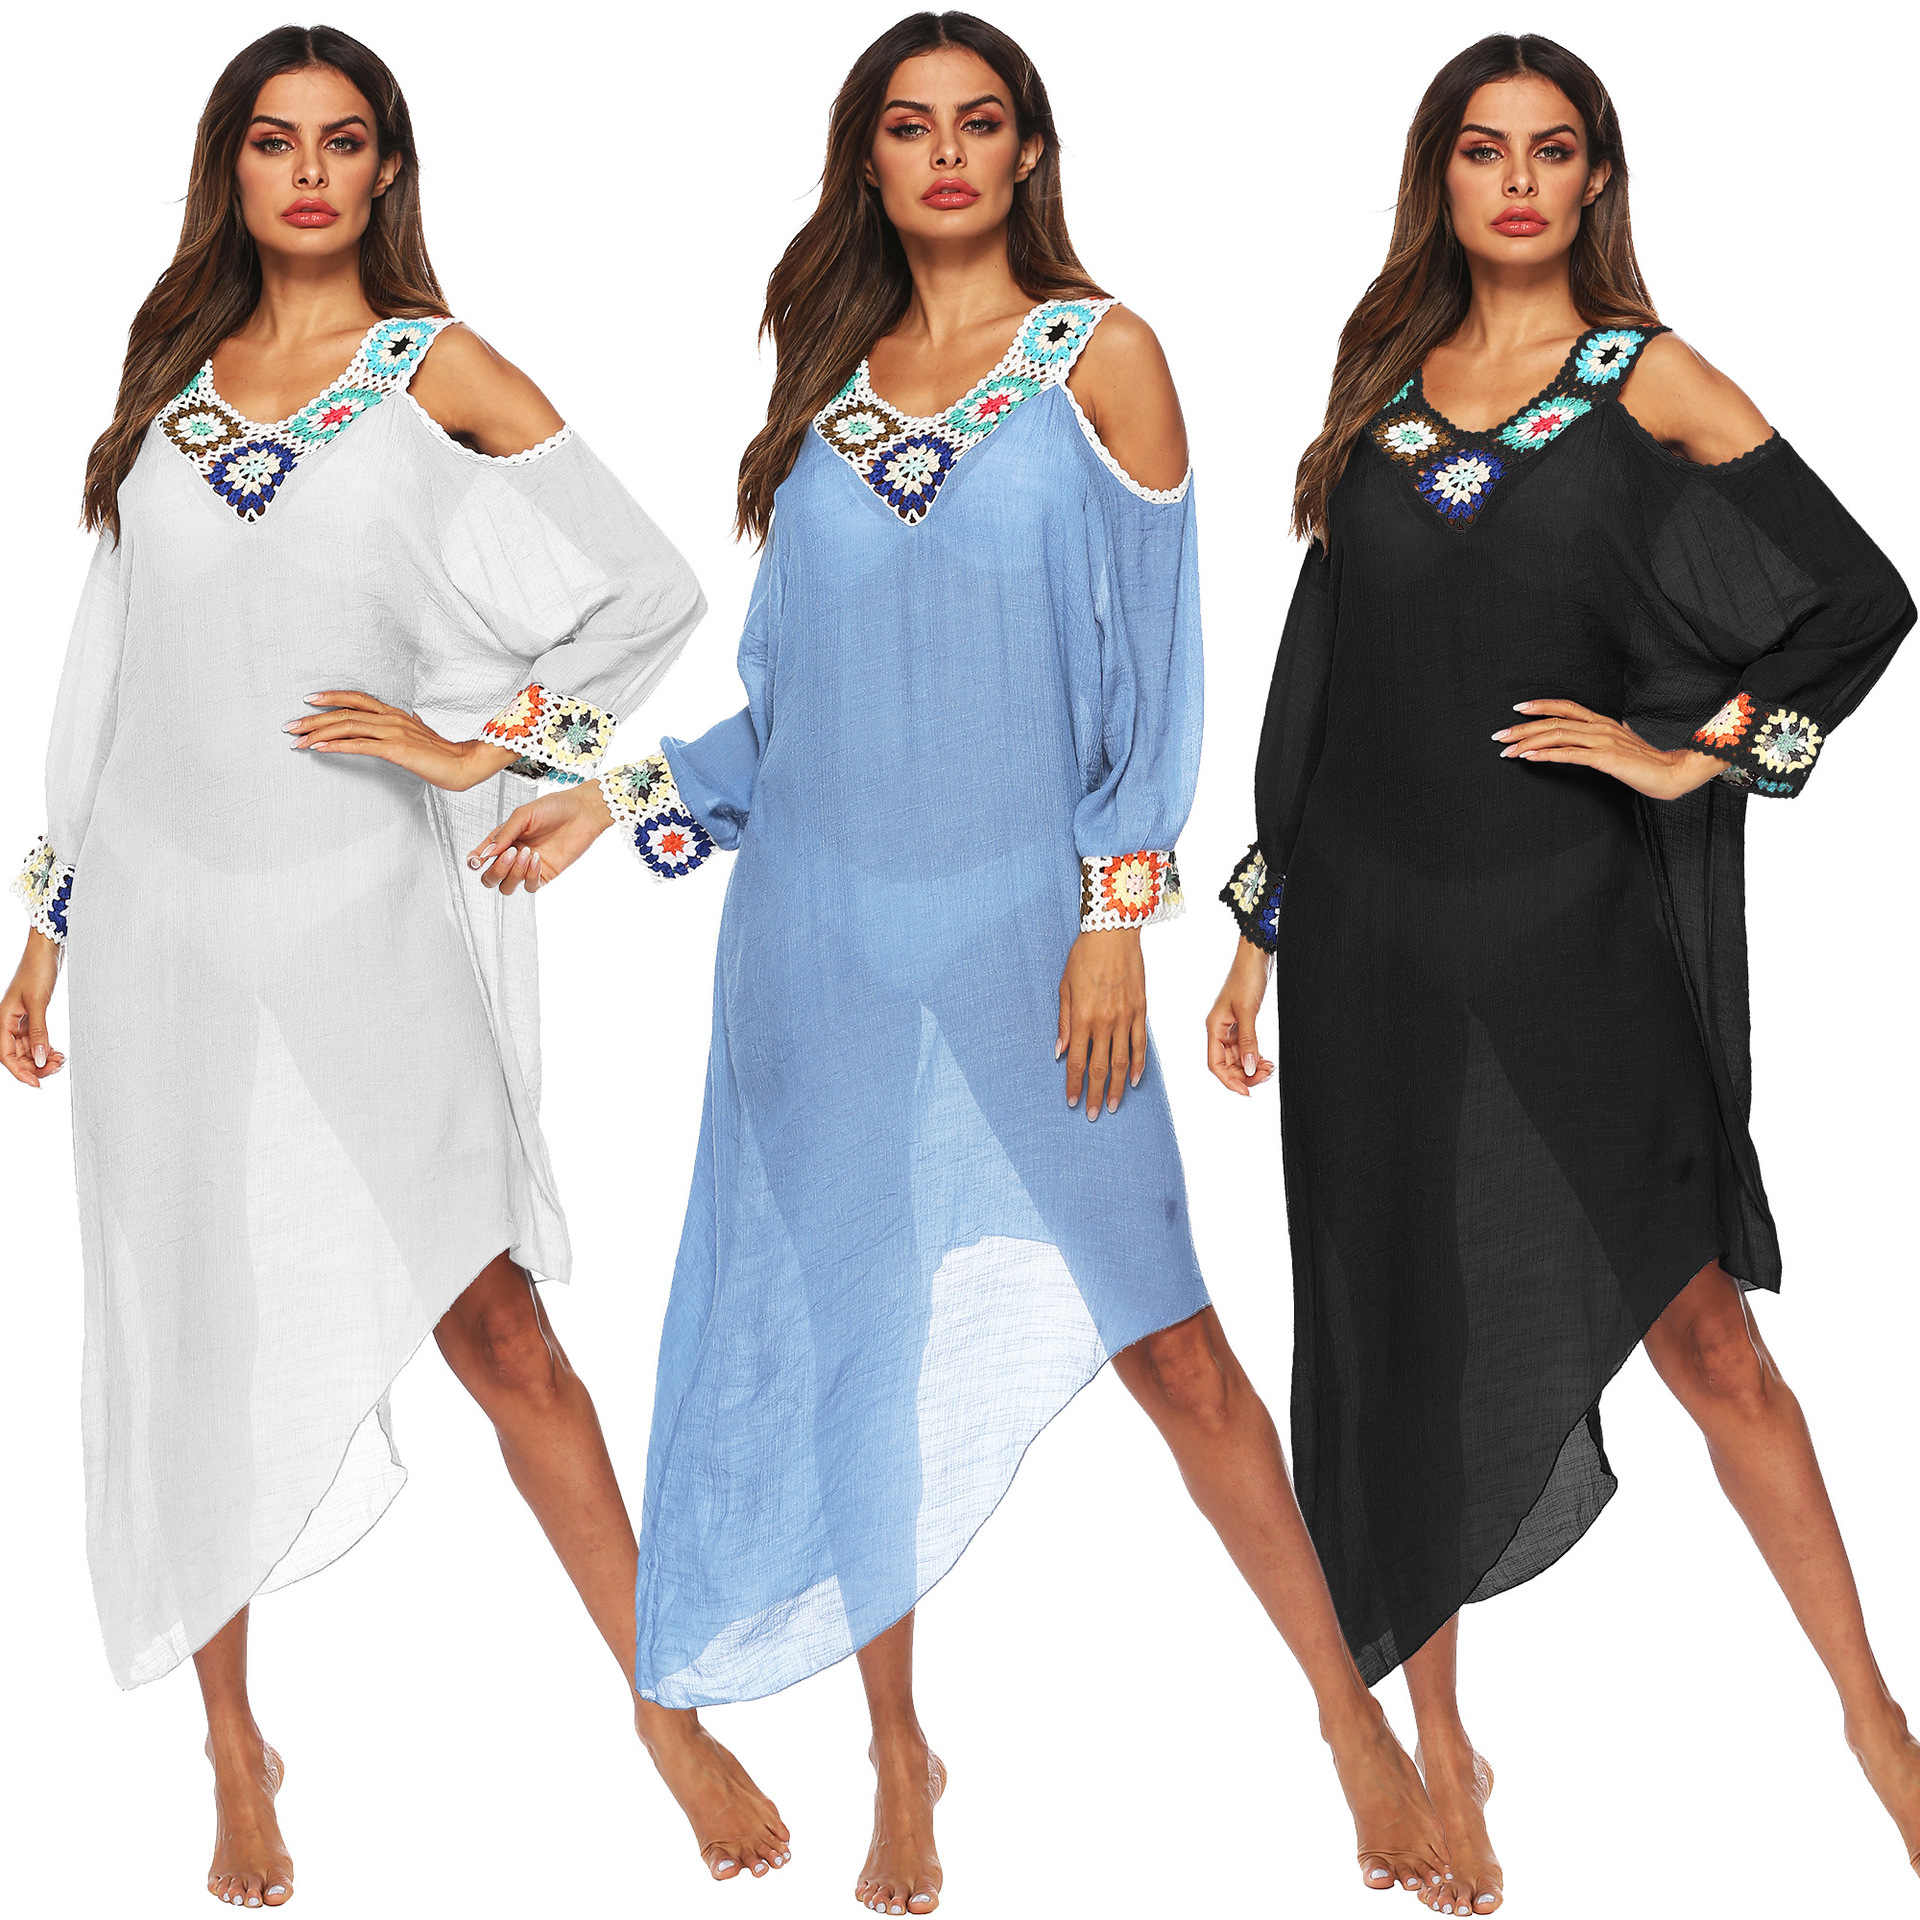 Swim Suit Cover Up 2019 Women Bathing Suit Beach Dress Hot Sale Sexy Splicing V-neck Long-sleeved Dress See-through Beach Blouse